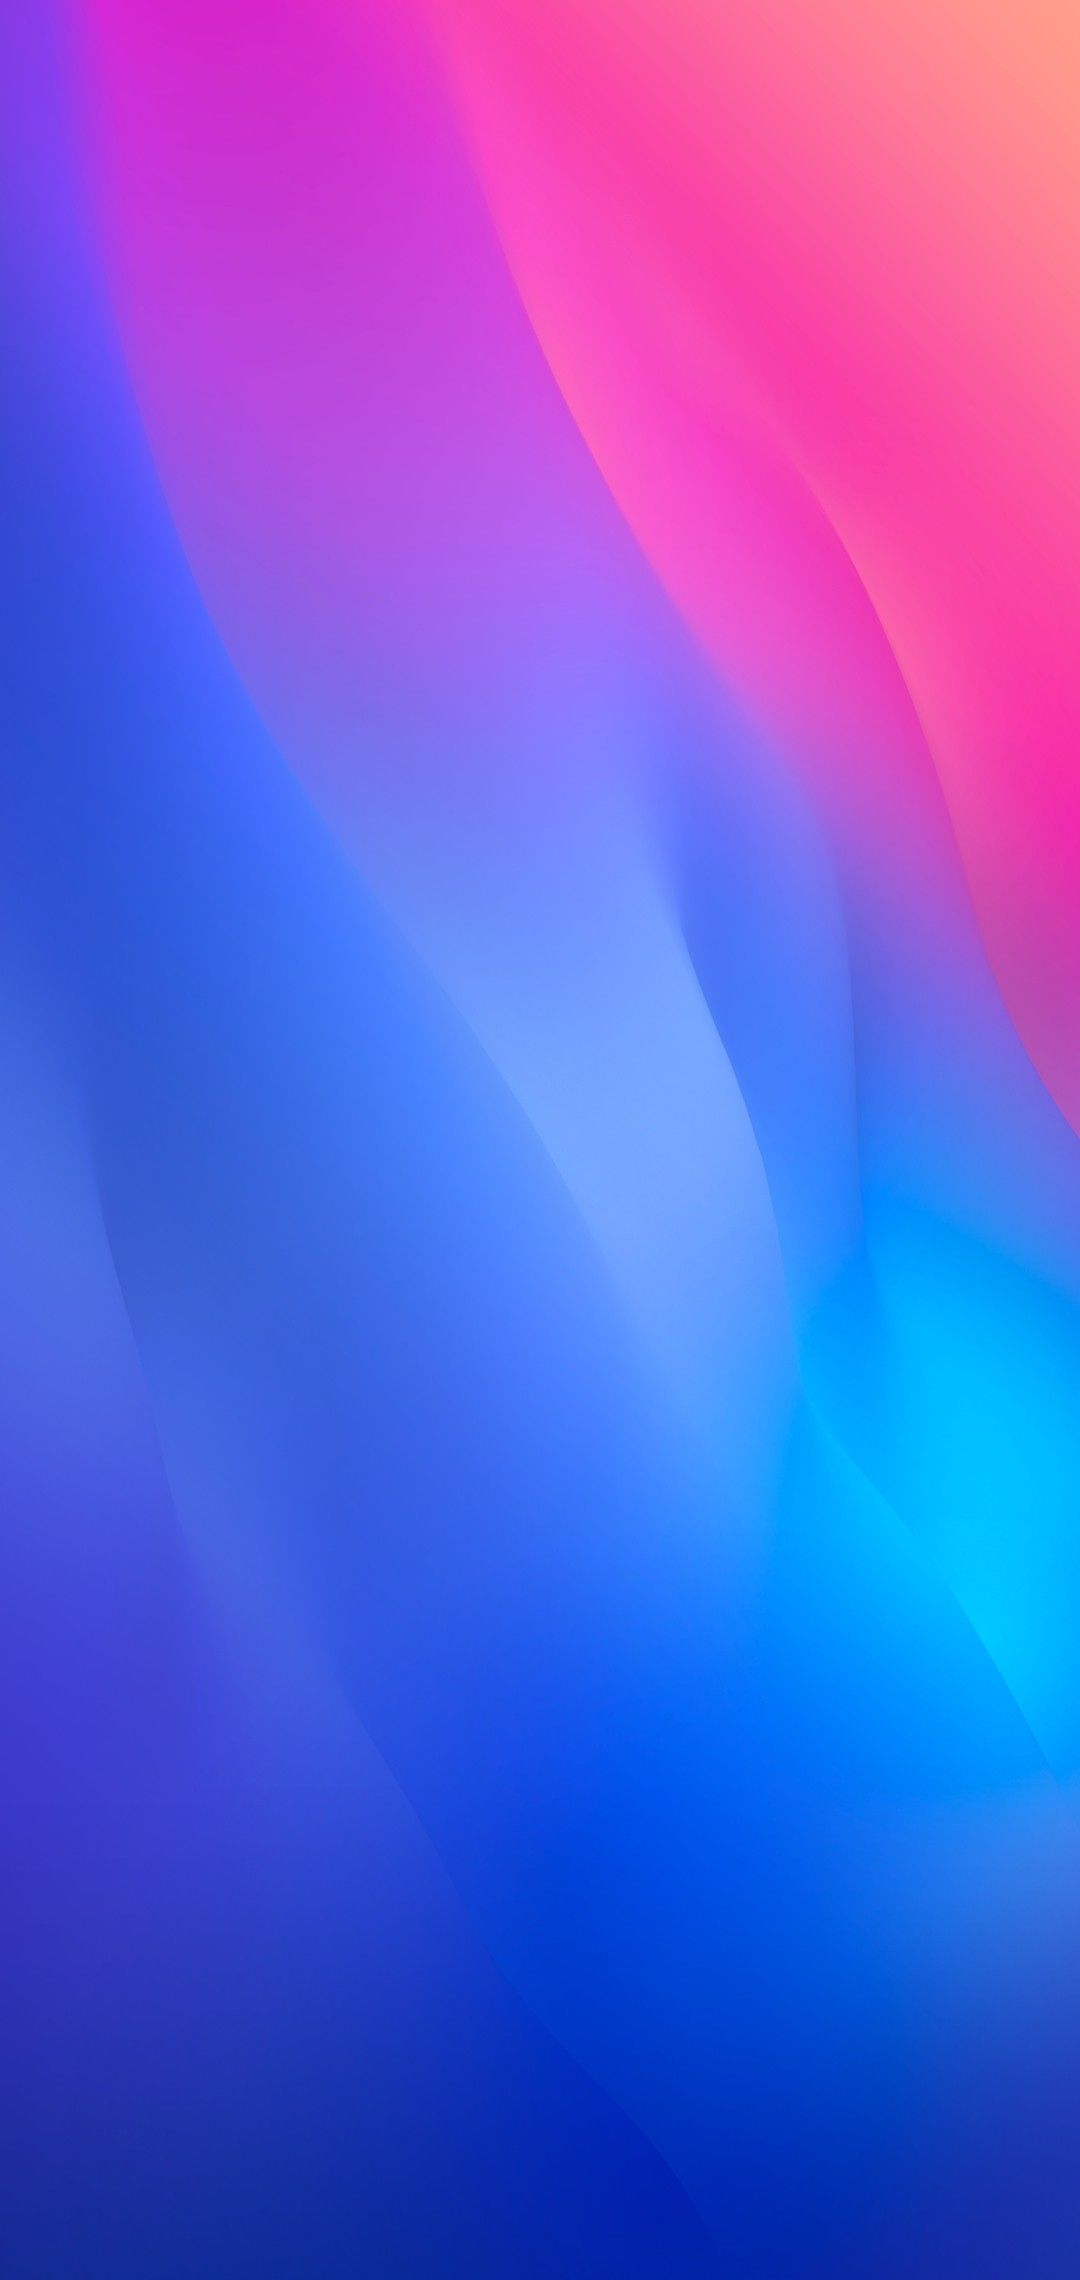 iOS 12 iPhone X blue pink clean simple abstract apple 1080x2280